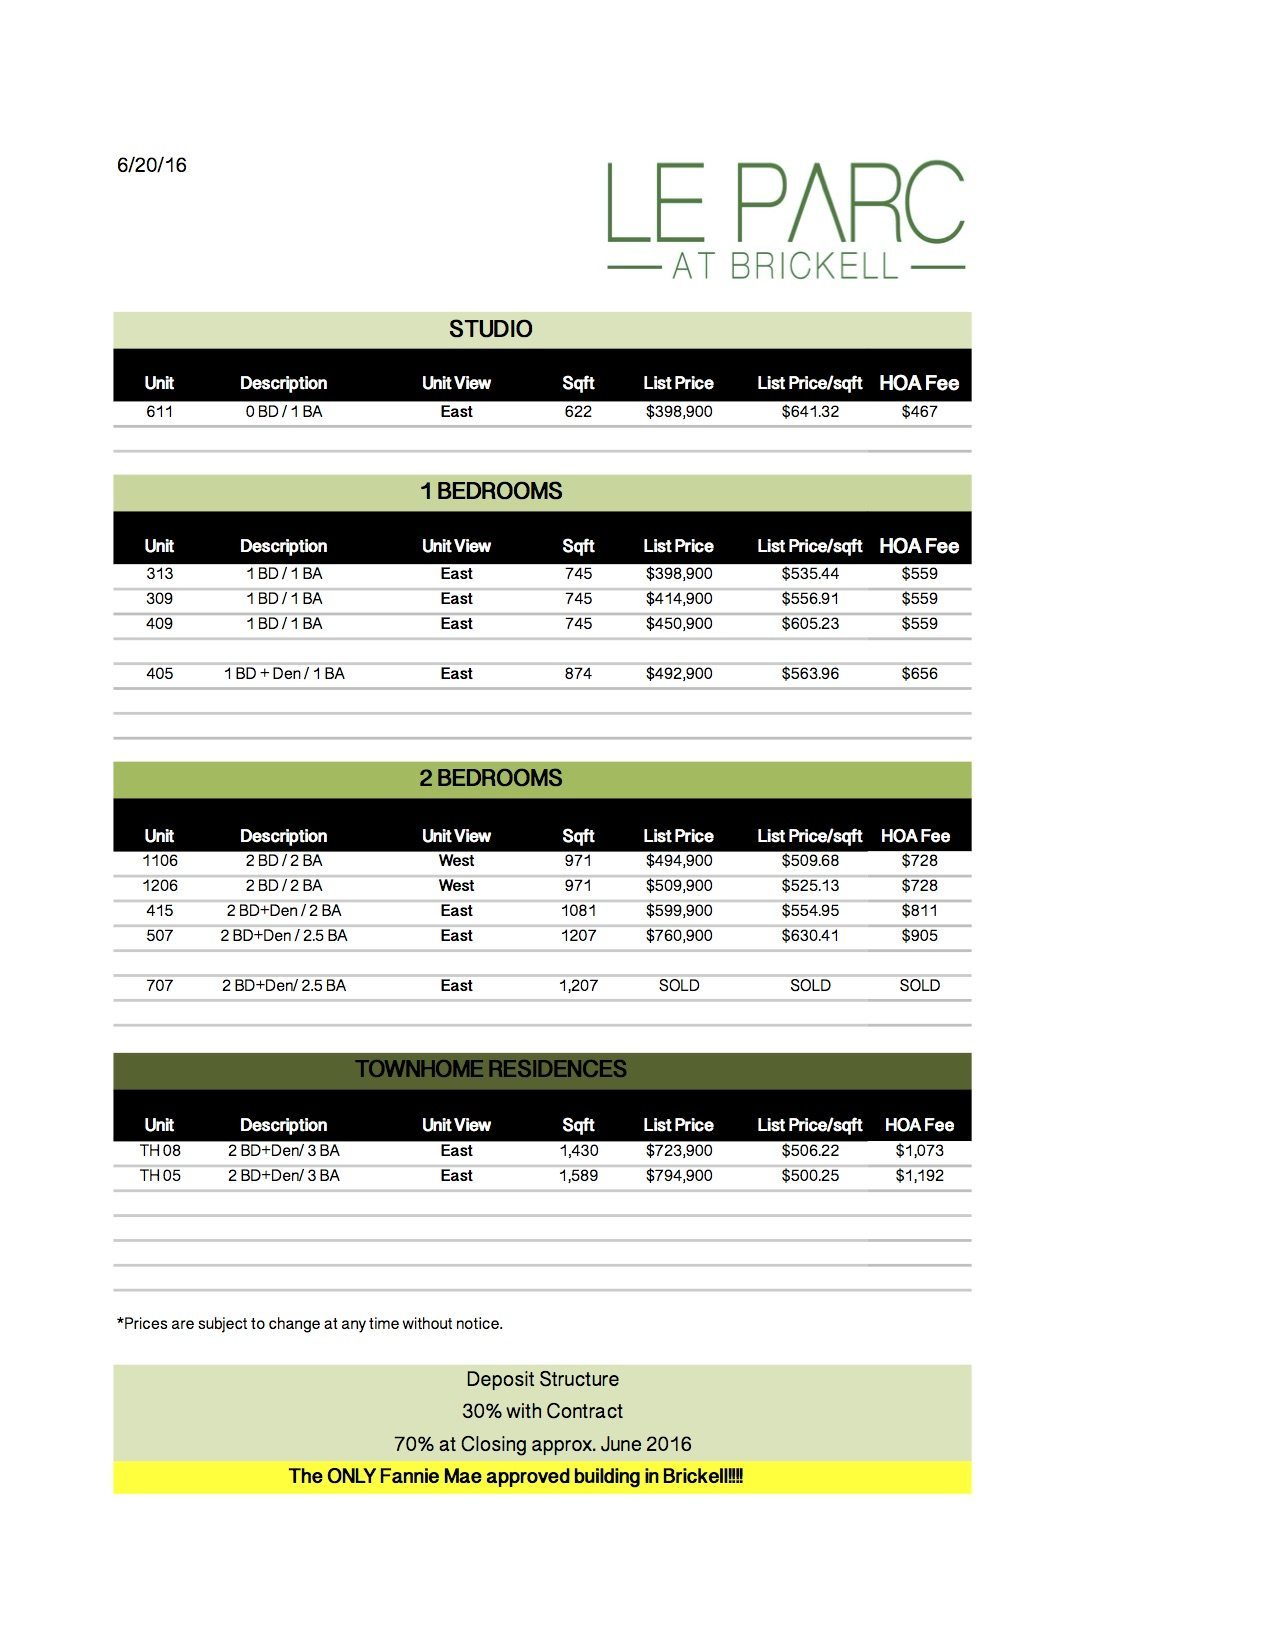 LeParc 6_20_16 All Availability